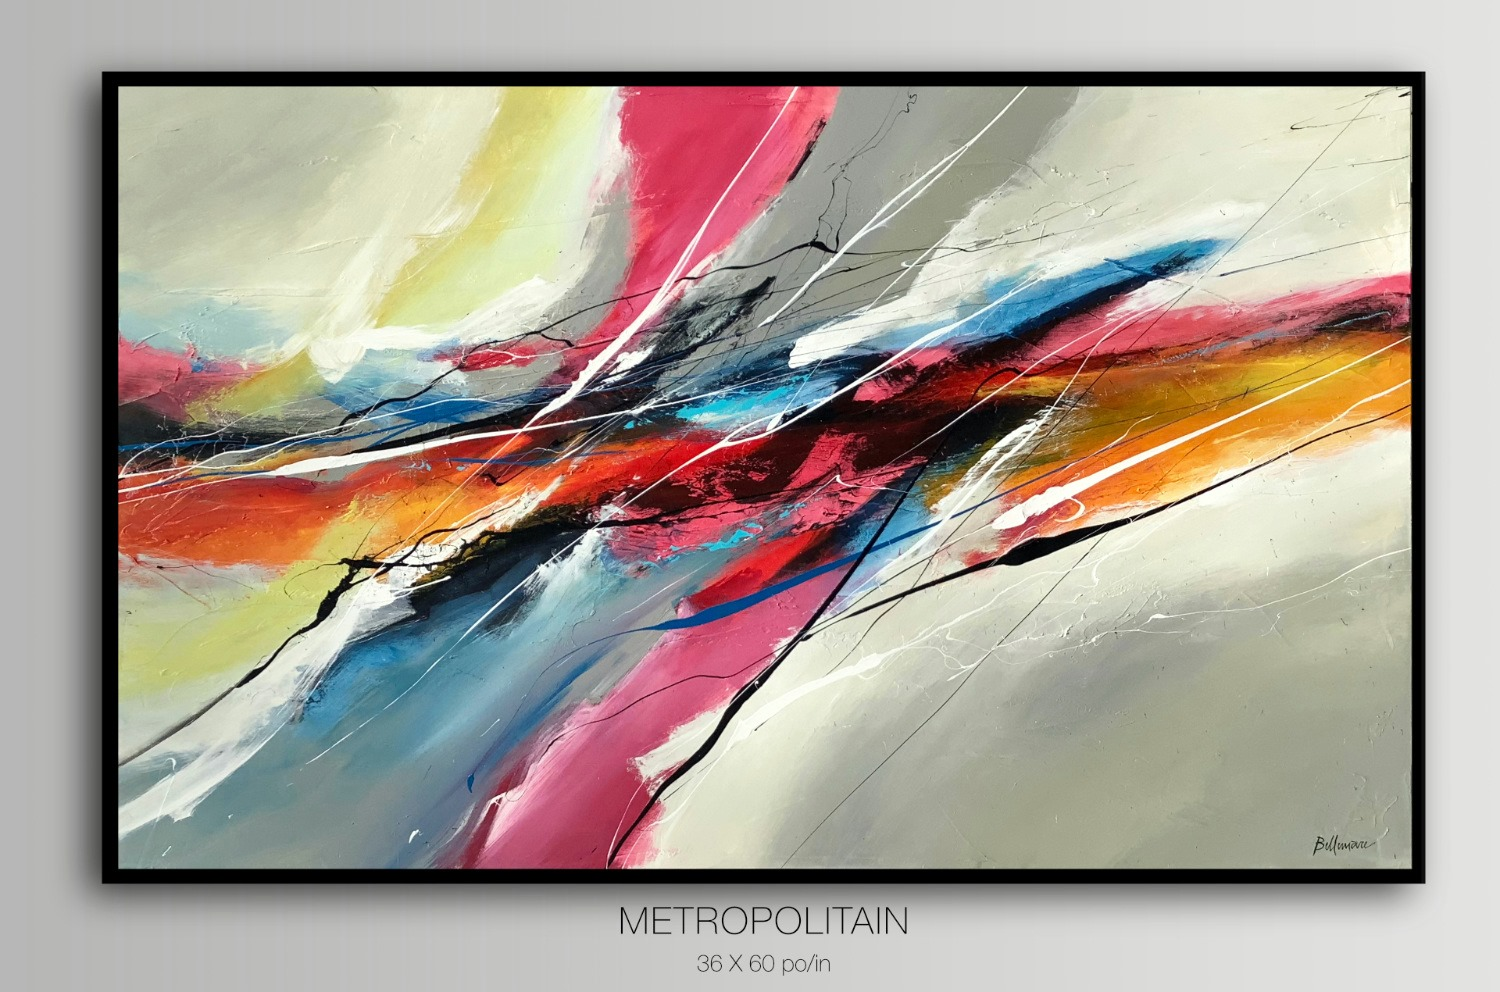 Metropolitain - Featured